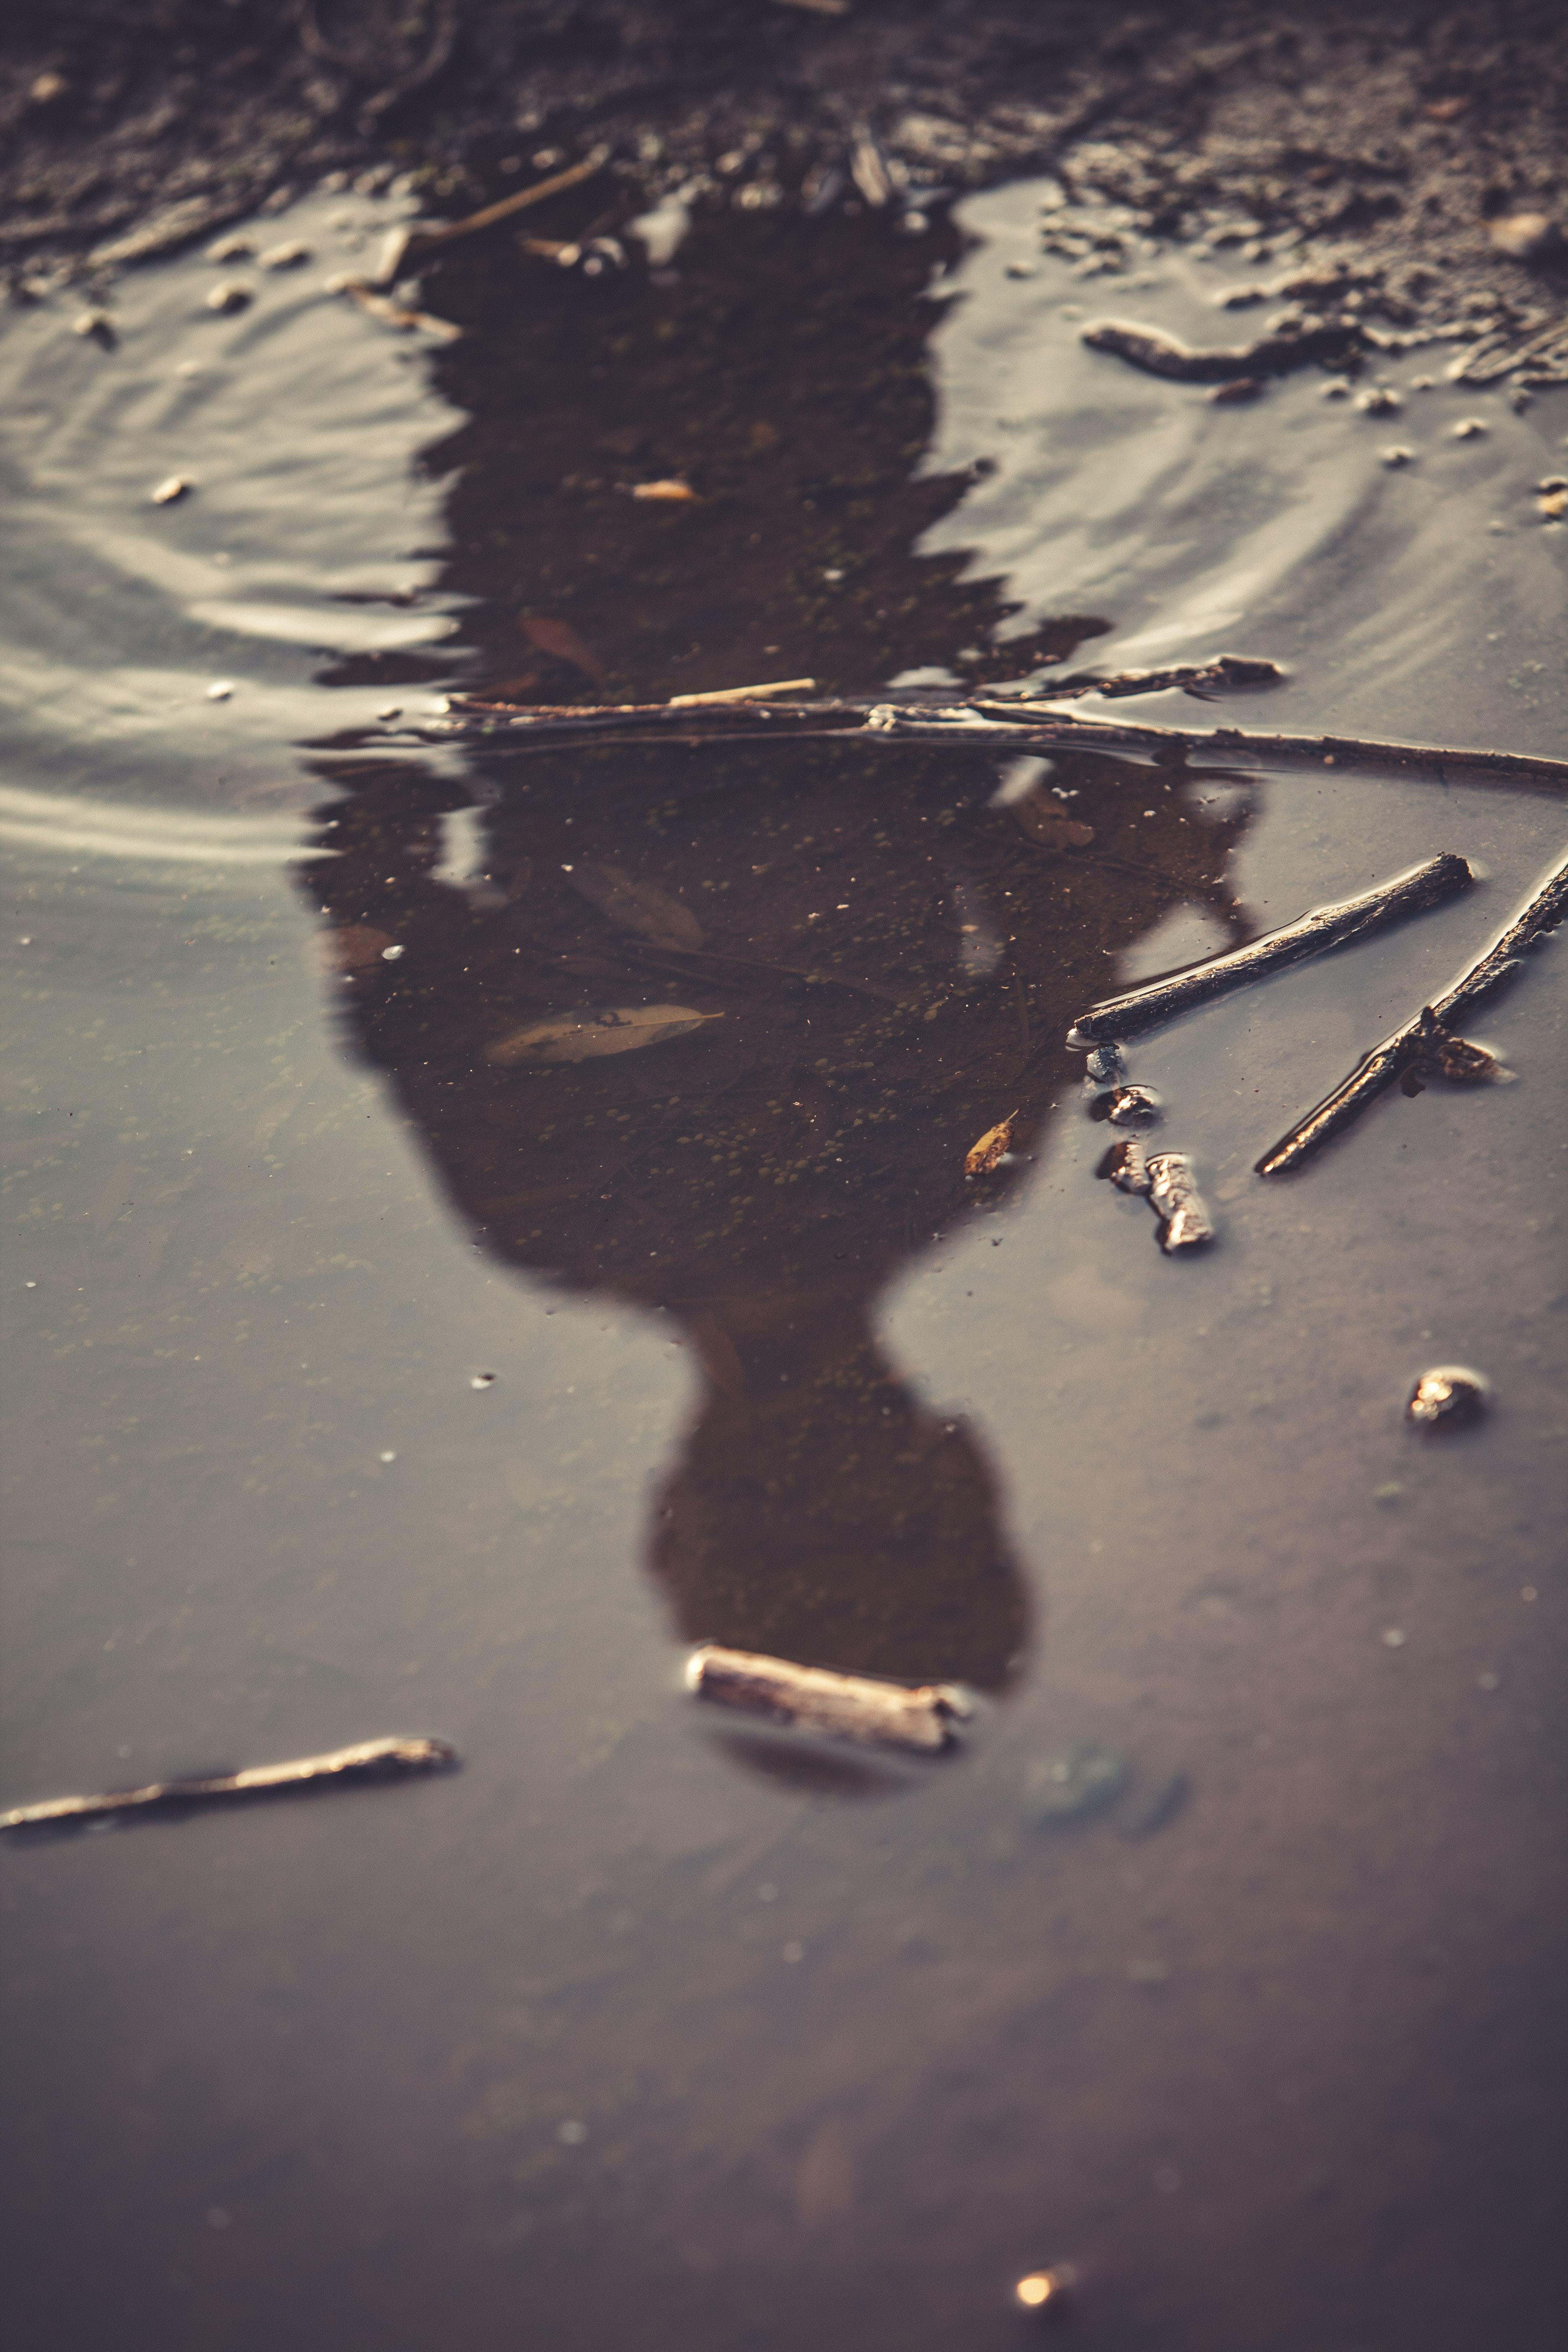 A reflection showing a person's shadow in a stick covered pond